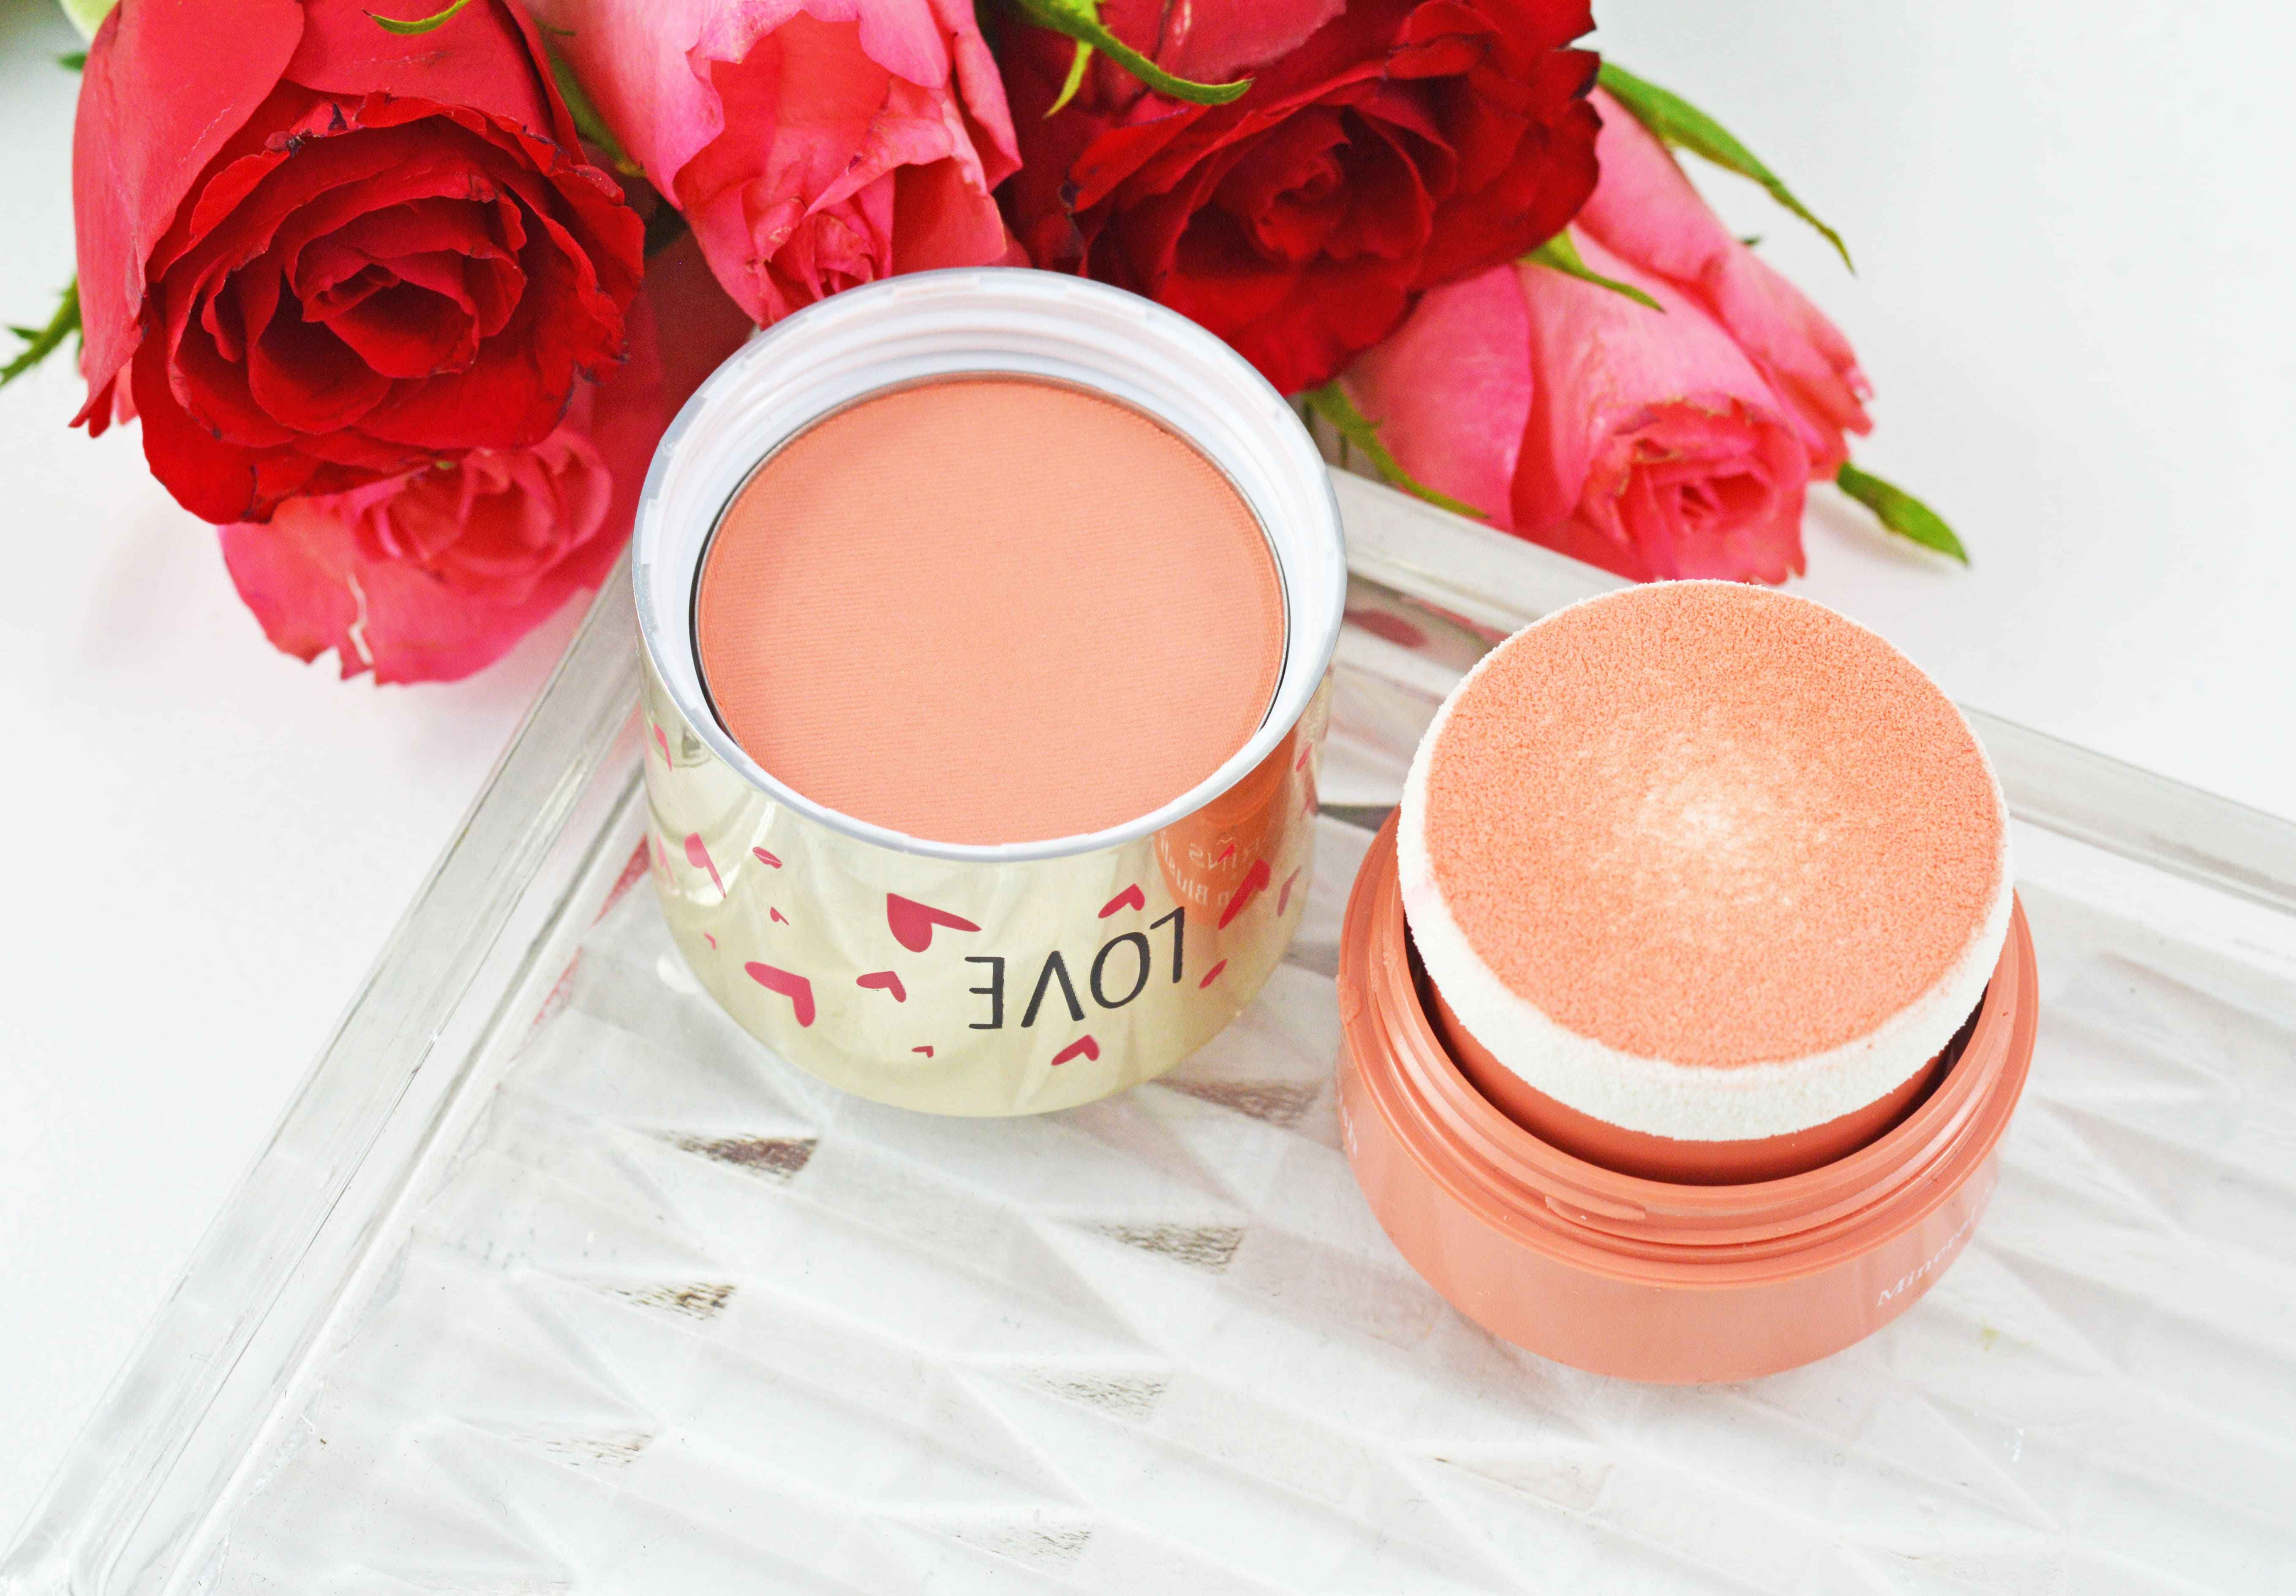 Clarins - Skin Illusion Blush